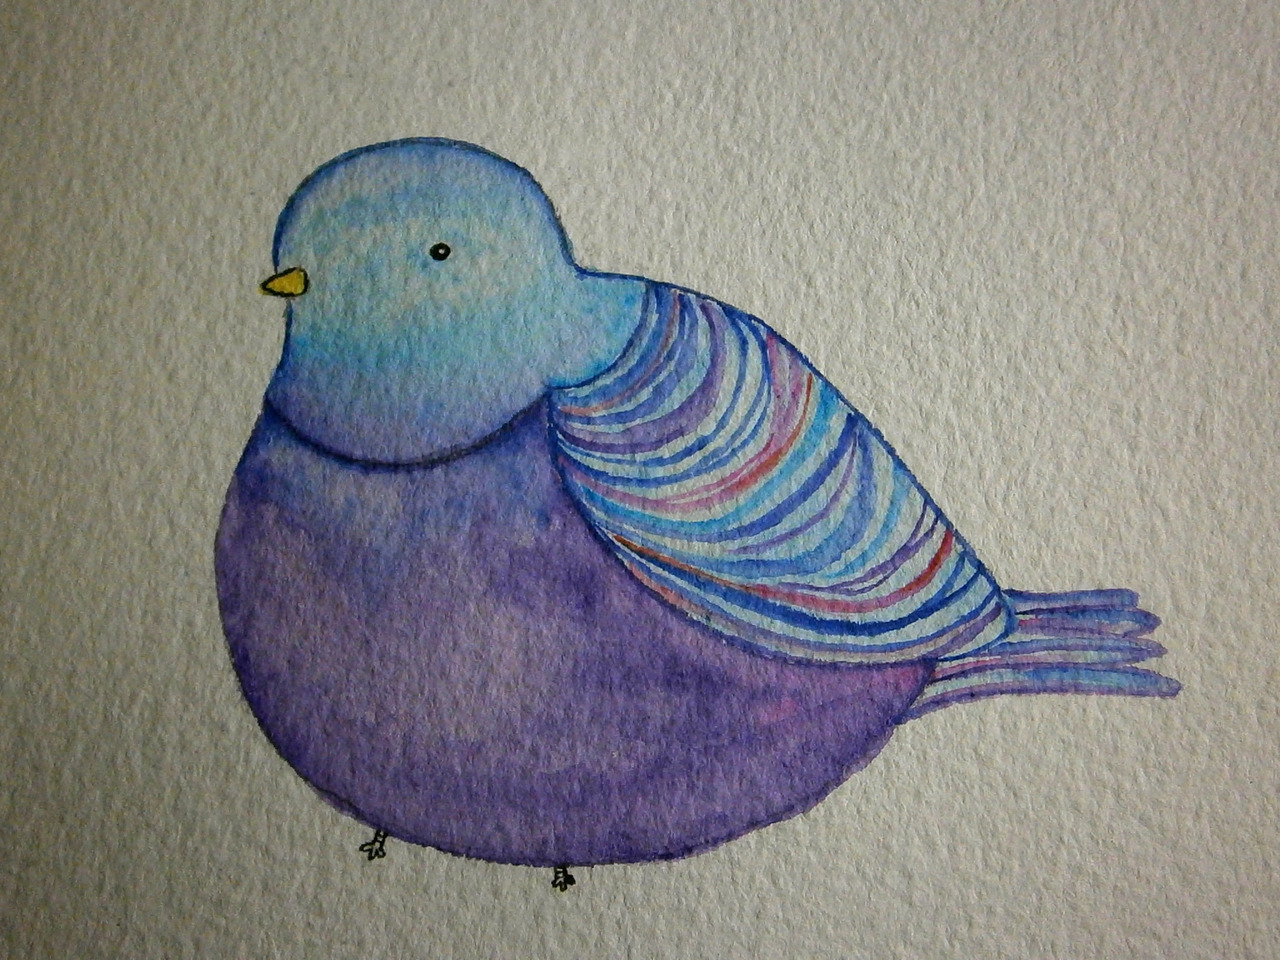 eatsleepdraw:  Pigeon inspired by the work of Kate Wilson (littledoodles.net) a birthday card for my friend :) Watercolour. come visit my tumblr for more: joyclan.tumblr.com :)